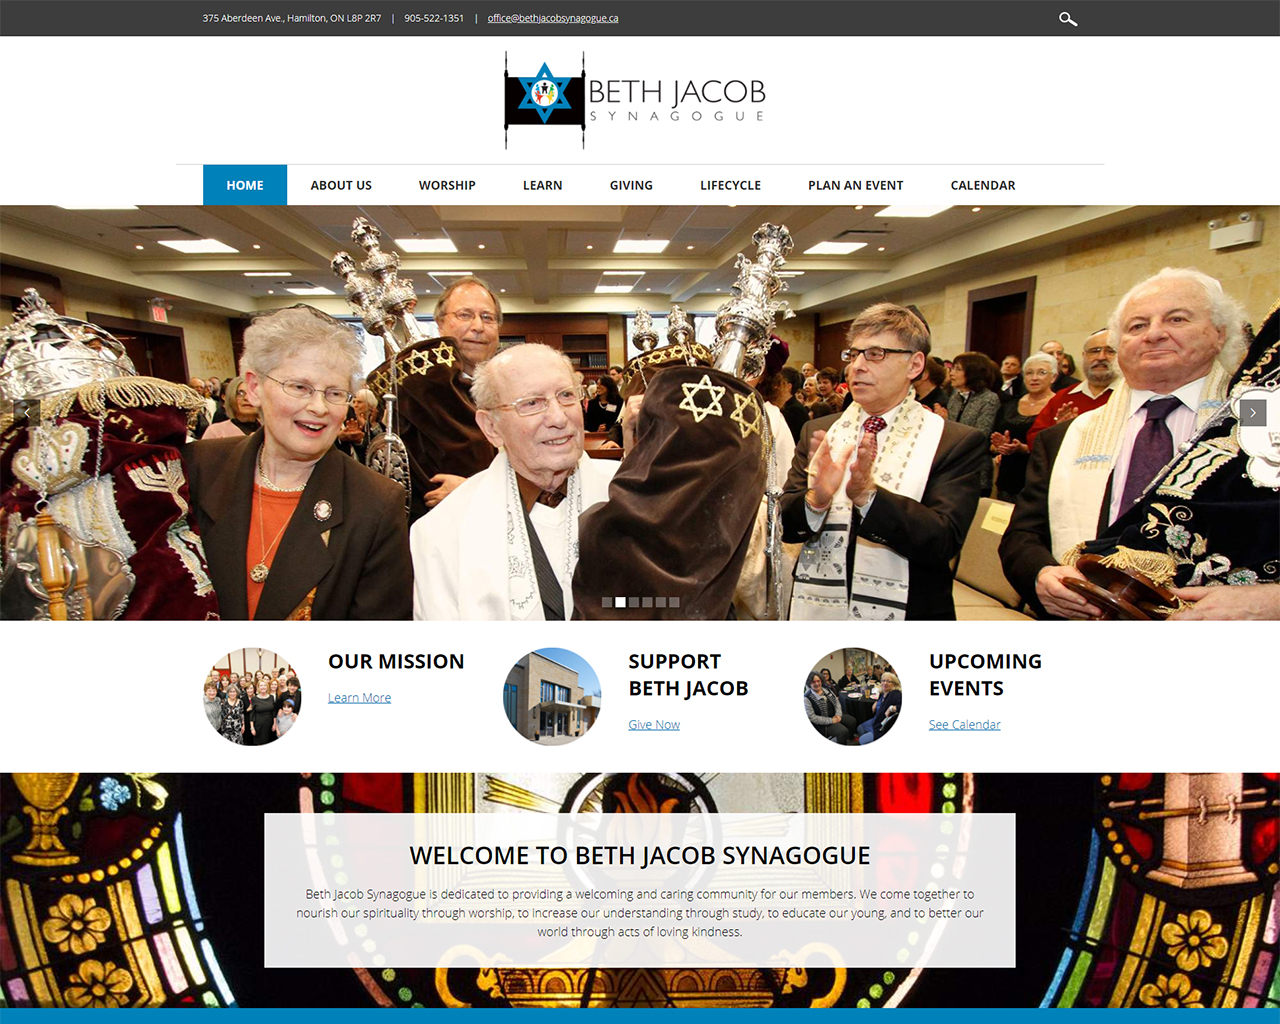 Beth Jacob - synagogue website design